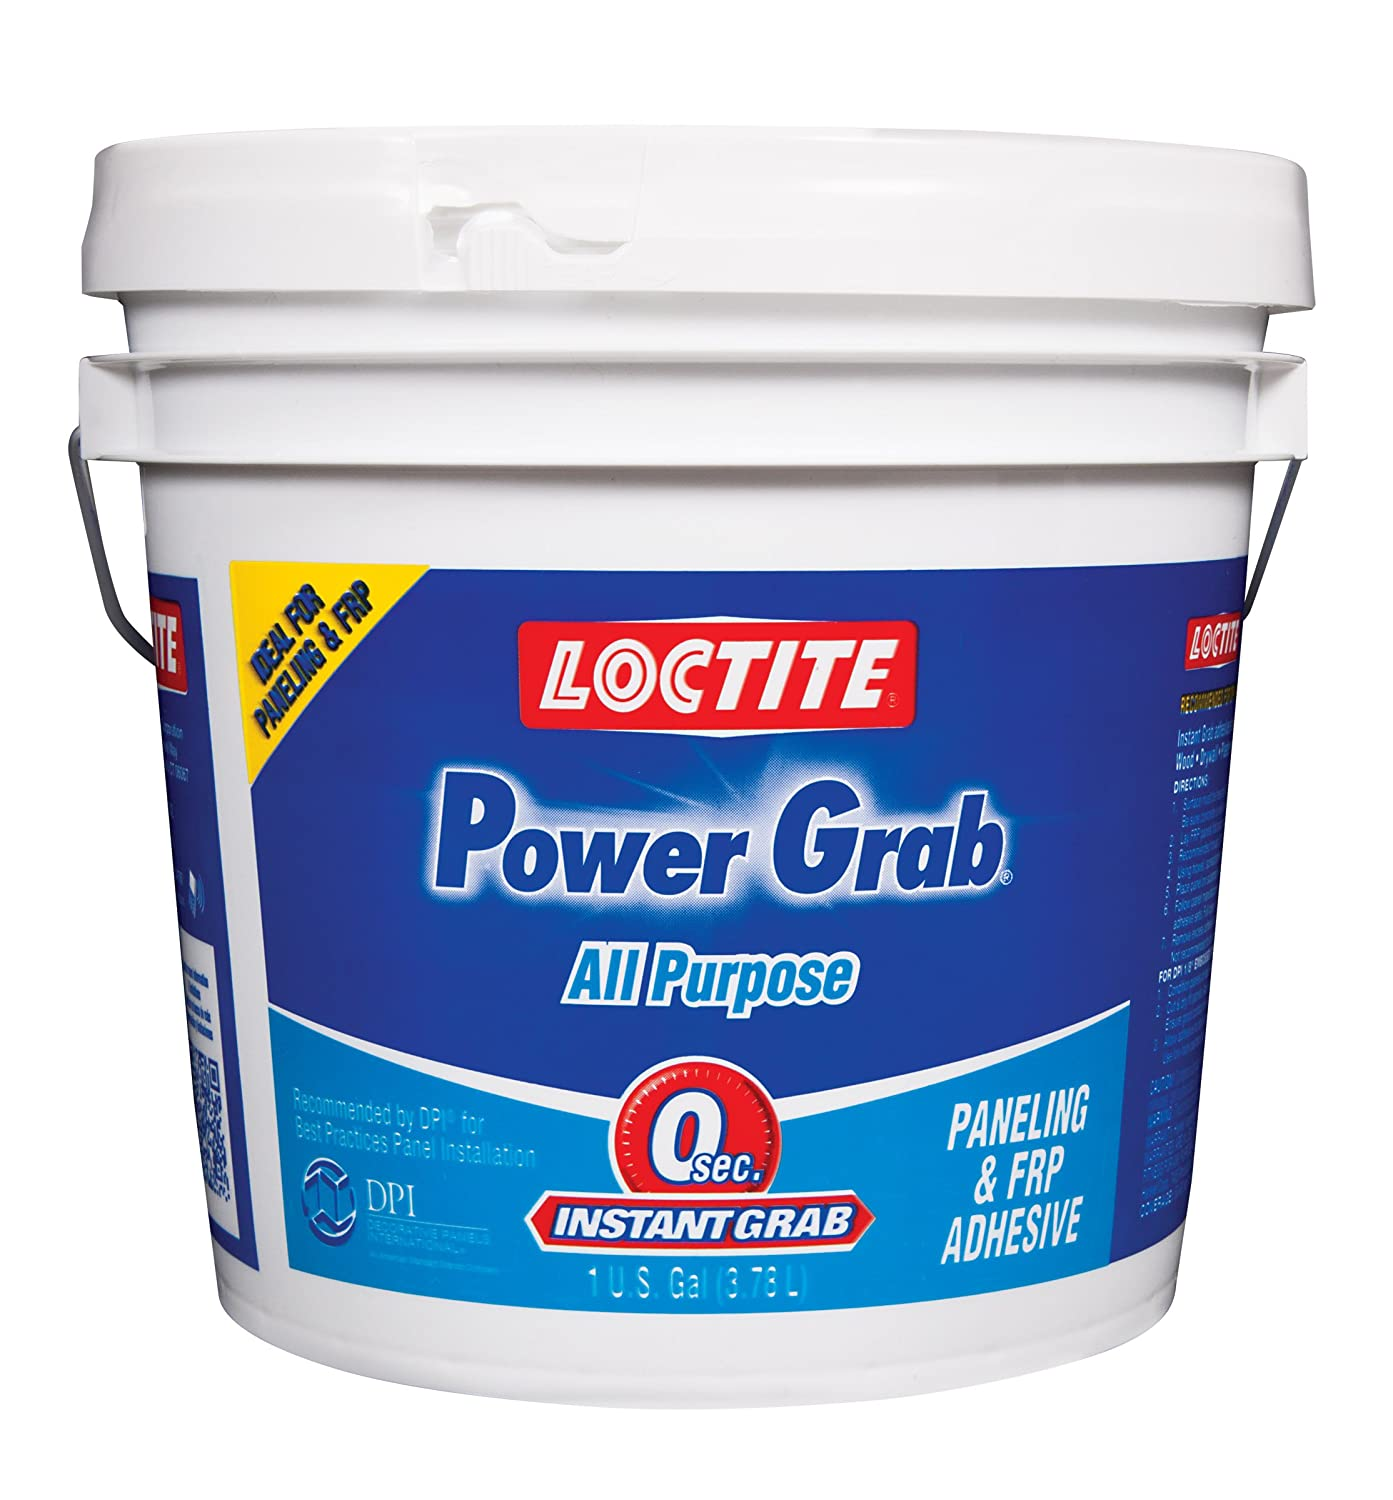 Loctite Power Grab Express All Purpose Construction Adhesive, 3 Ounce Squeeze Tube (2031710) Henkel/osi Sealants